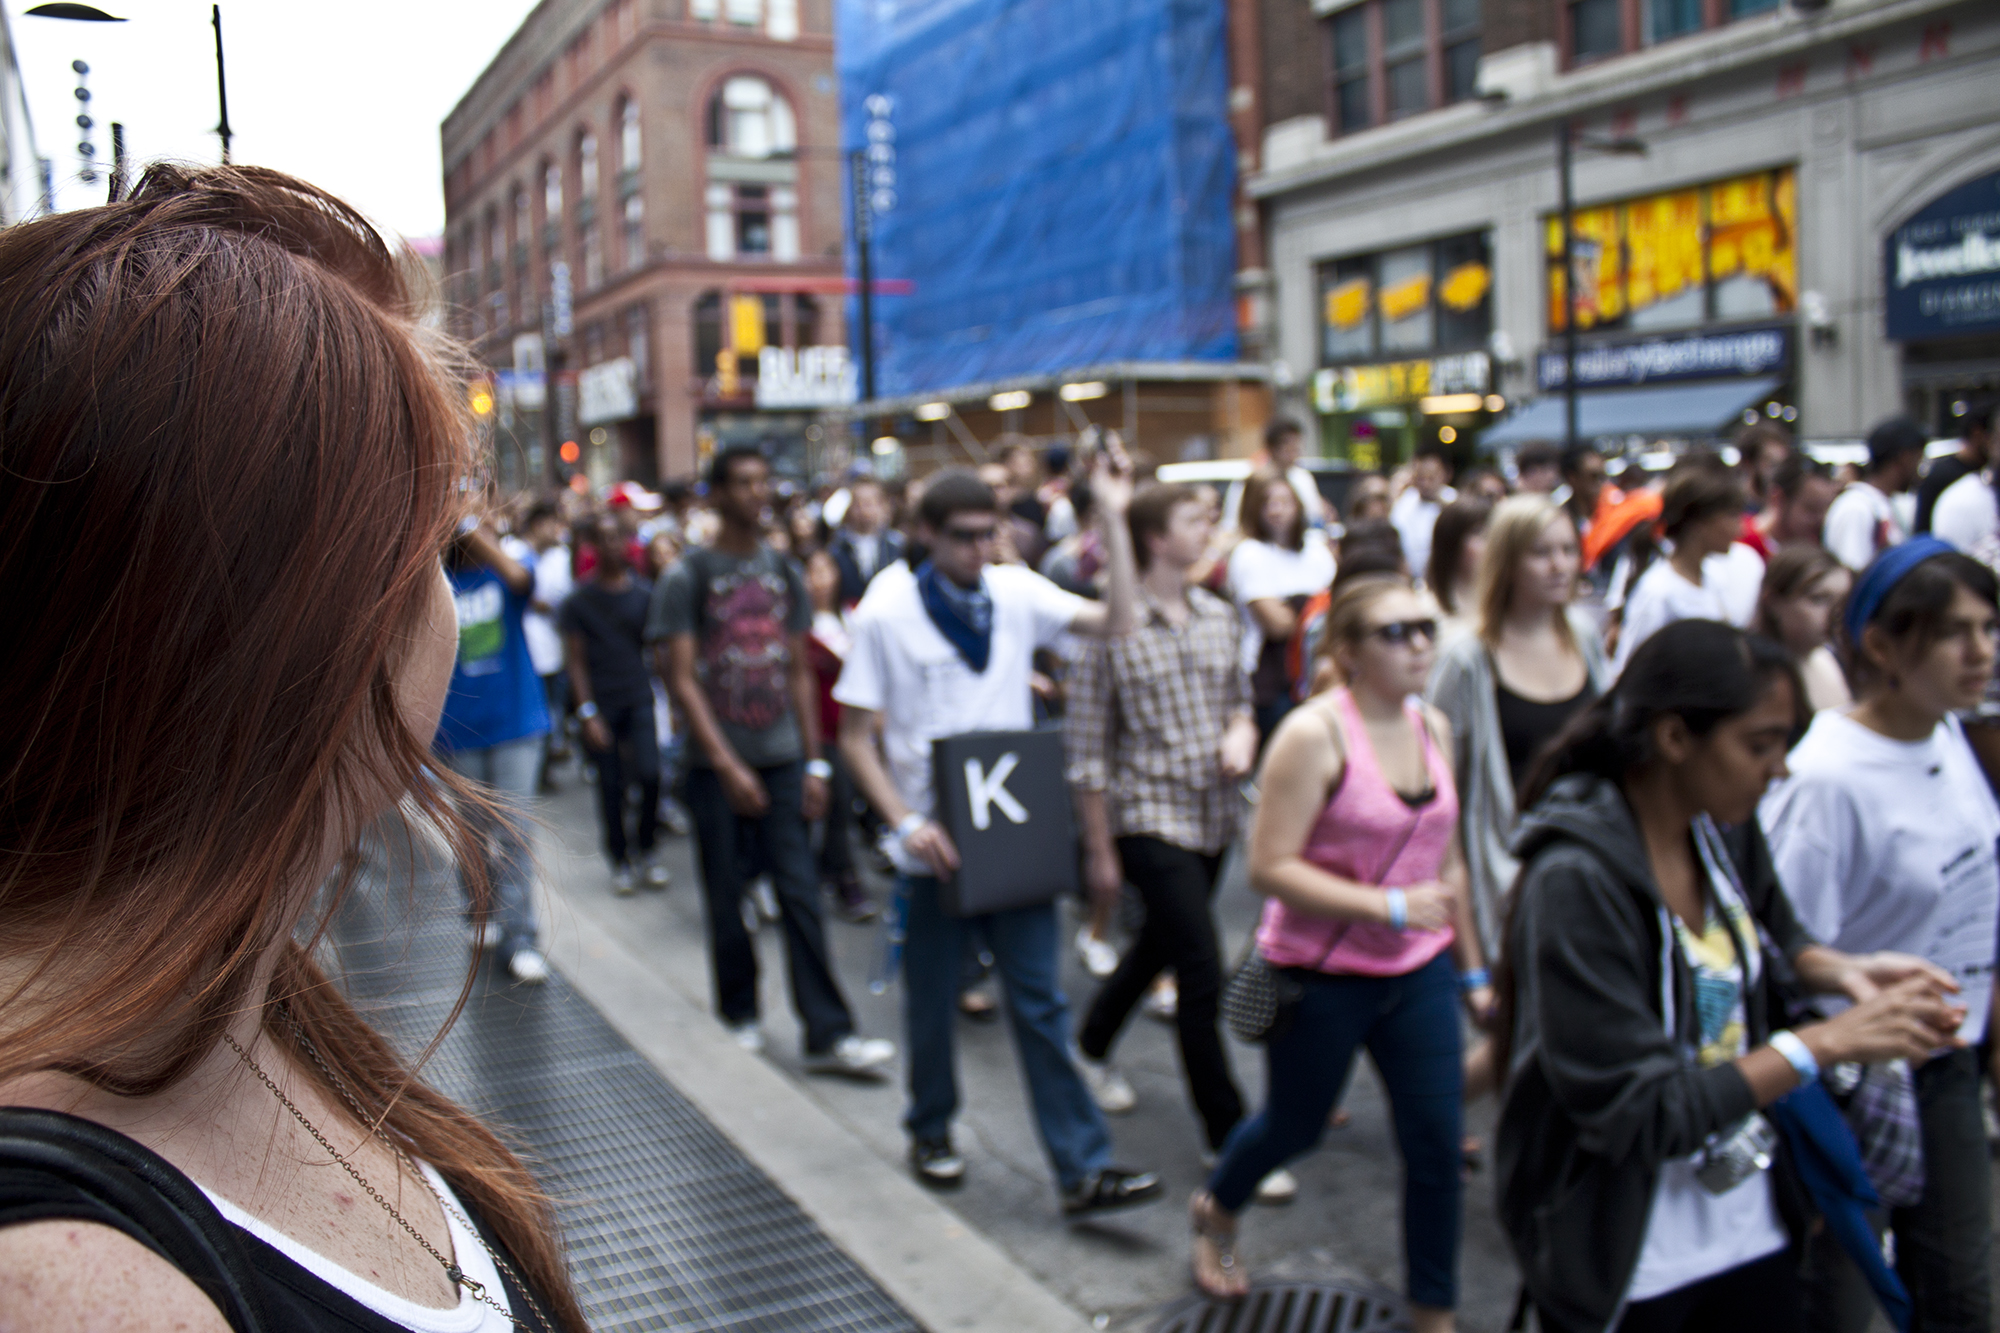 Ryerson University students parade on Yonge Street on Sept. 10, 2010. (Steve Silva)